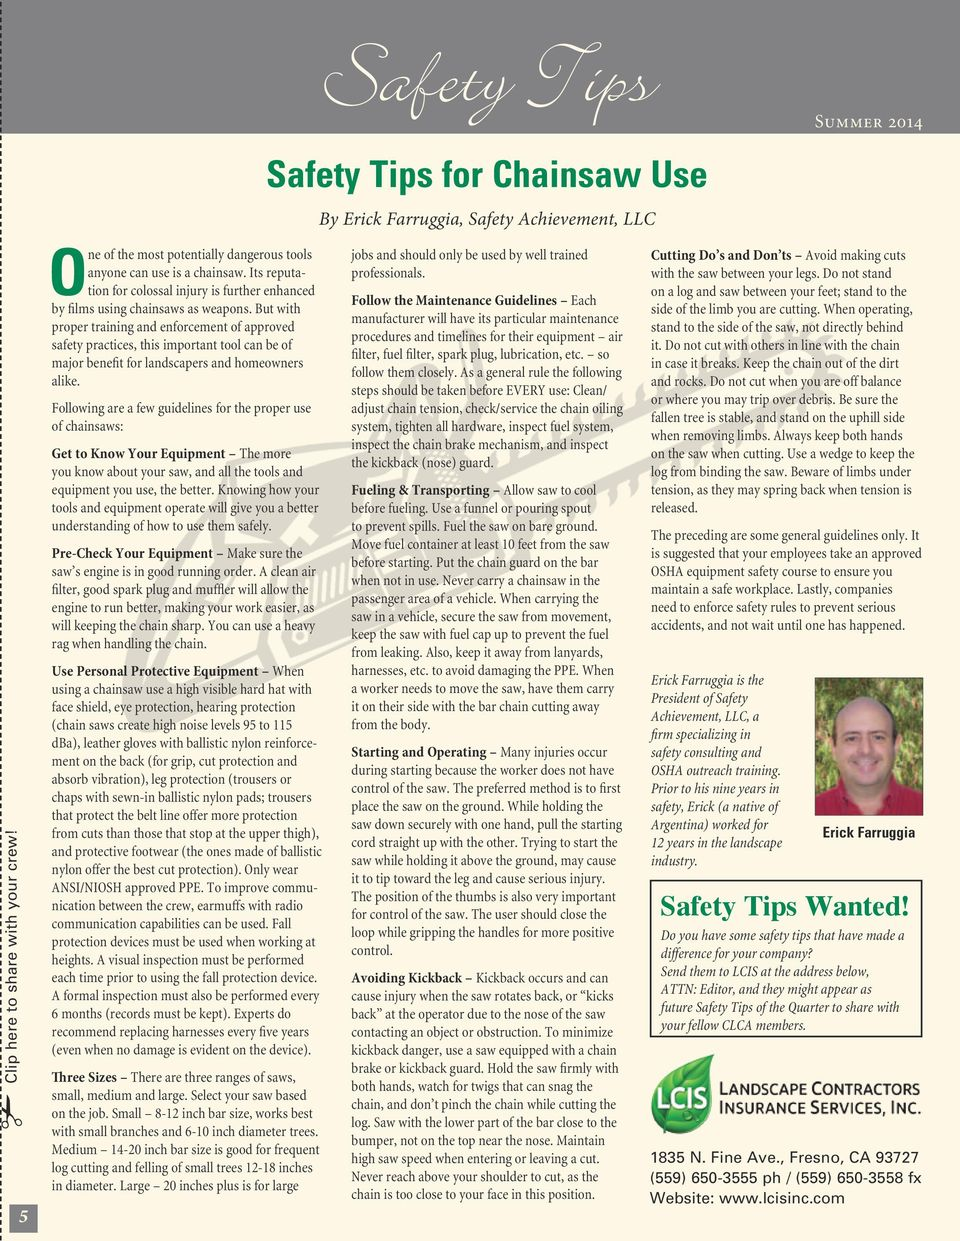 But with proper training and enforcement of approved safety practices, this important tool can be of major benefit for landscapers and homeowners alike.